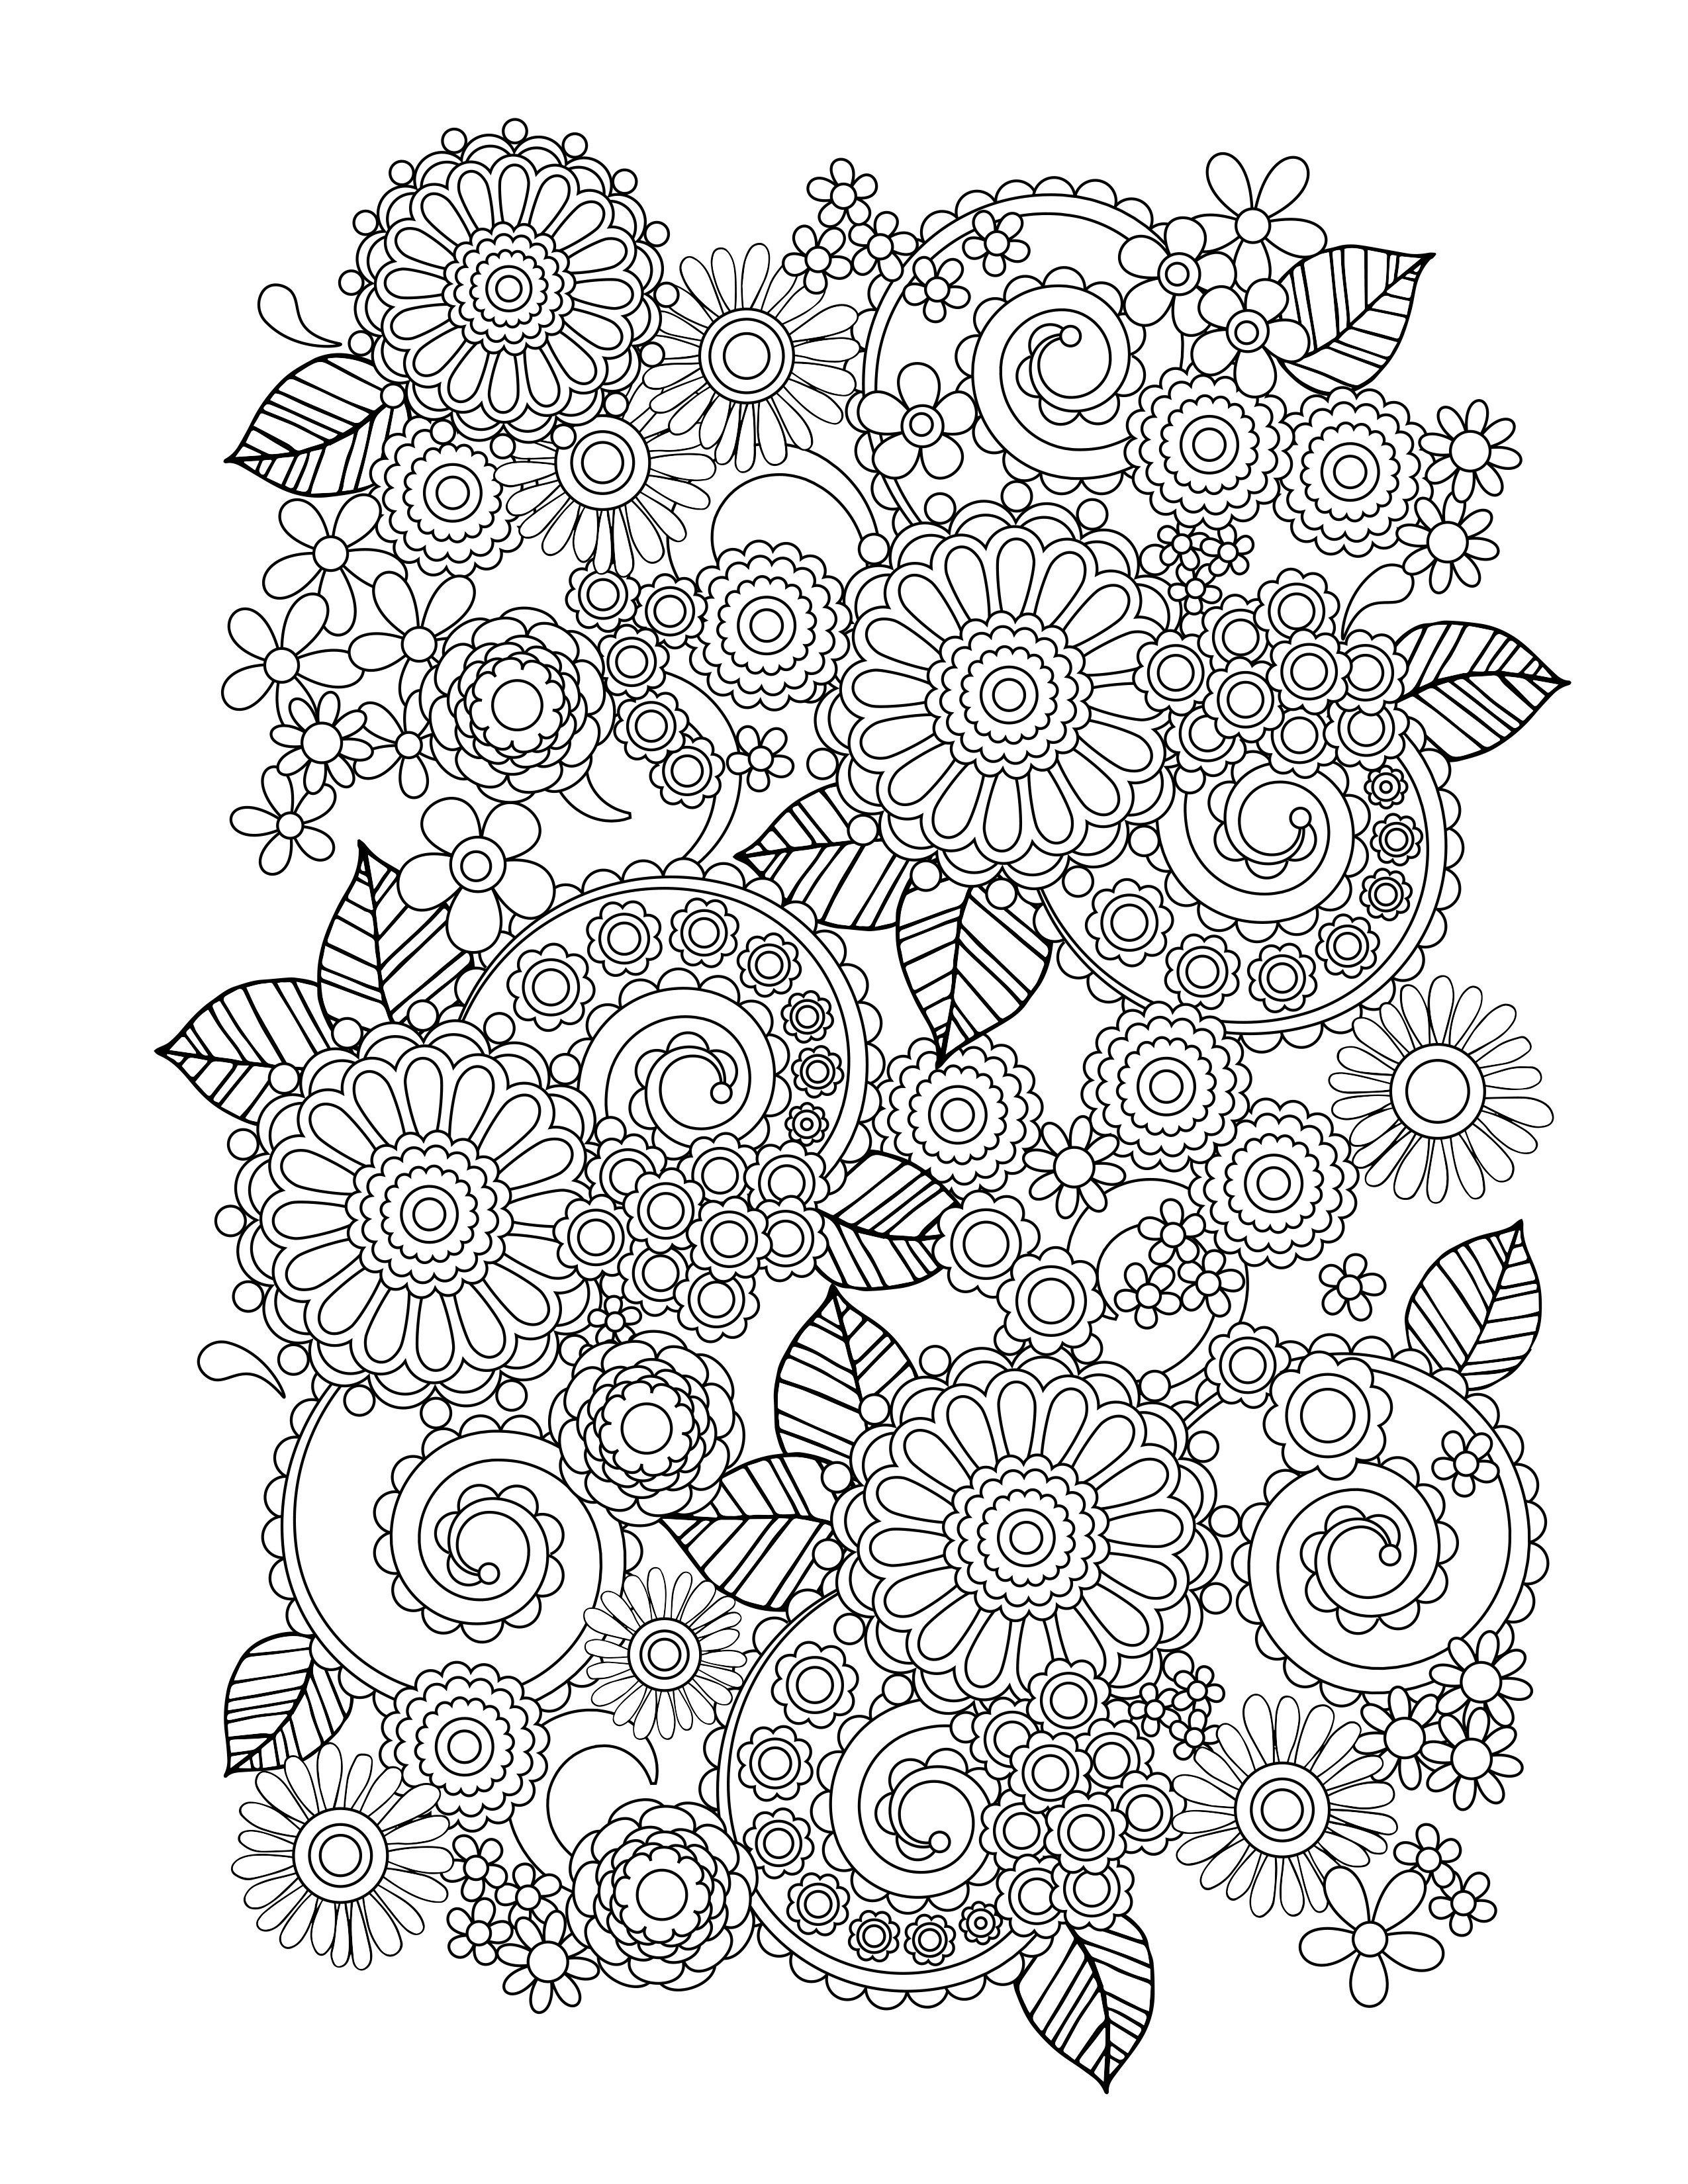 printable coloring pages for adults flowers adult coloring pages flowers to download and print for free for coloring adults pages printable flowers